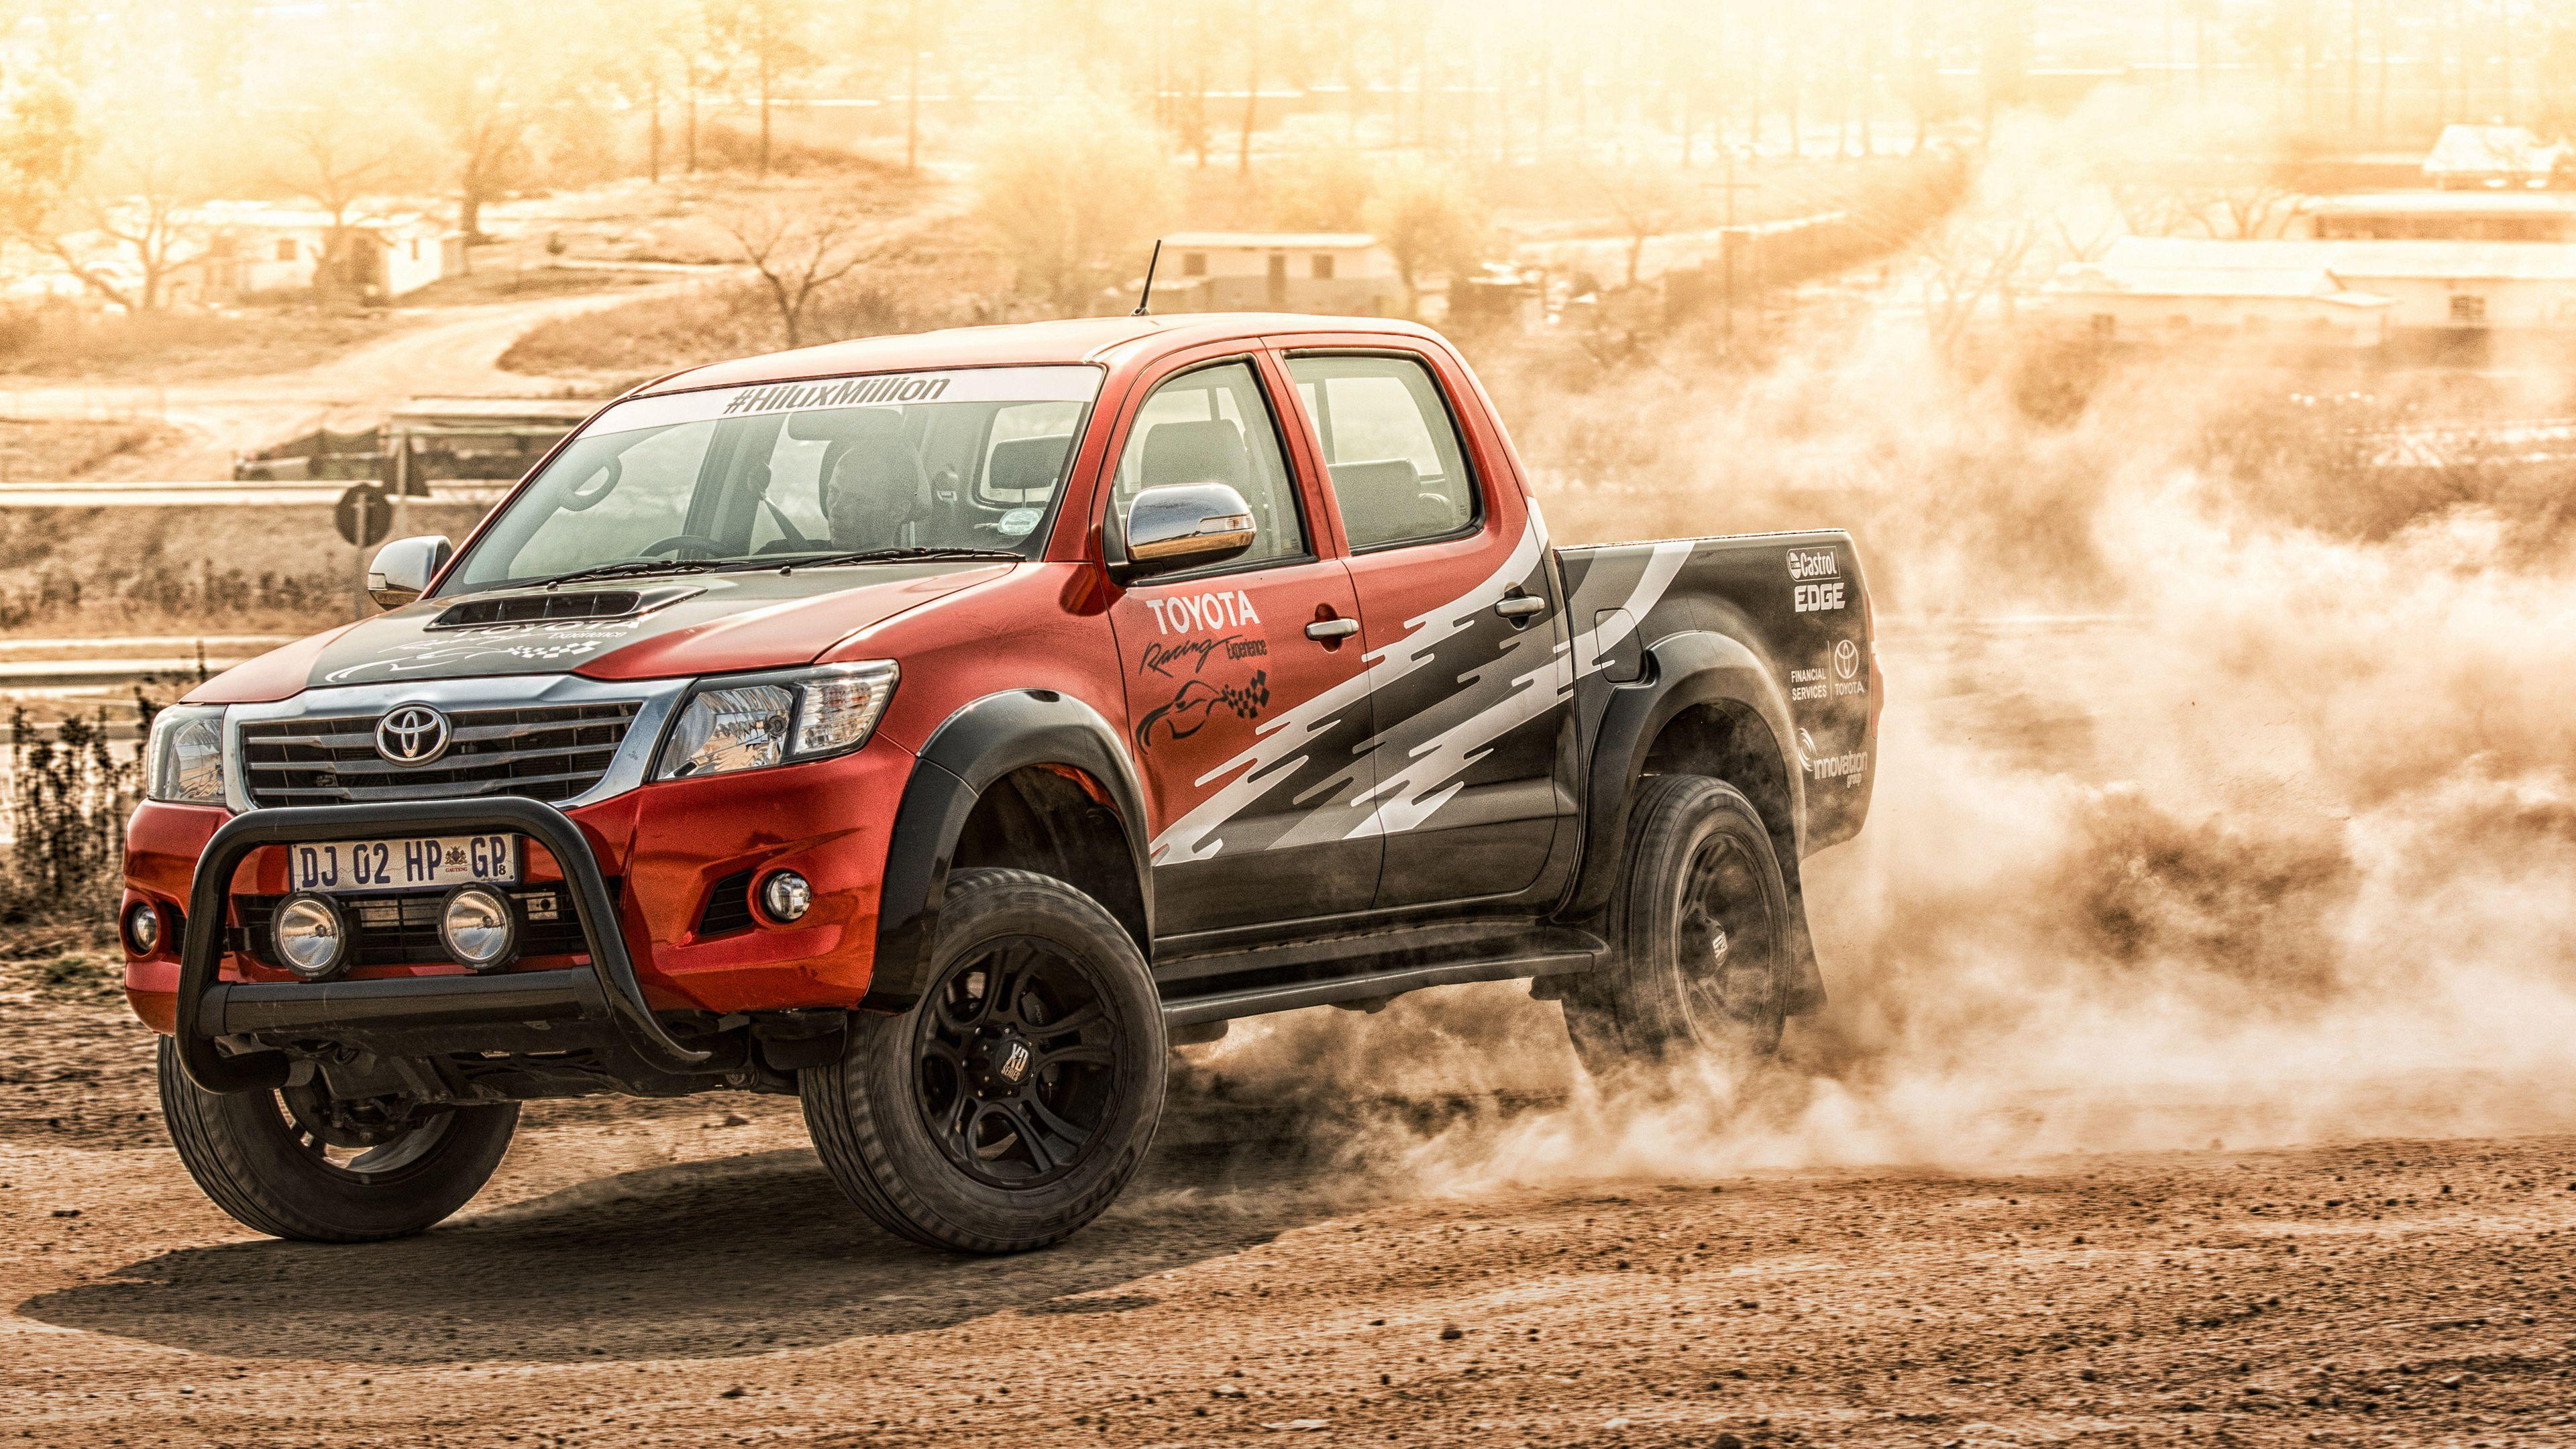 Toyota Hilux 2015 Wallpapers